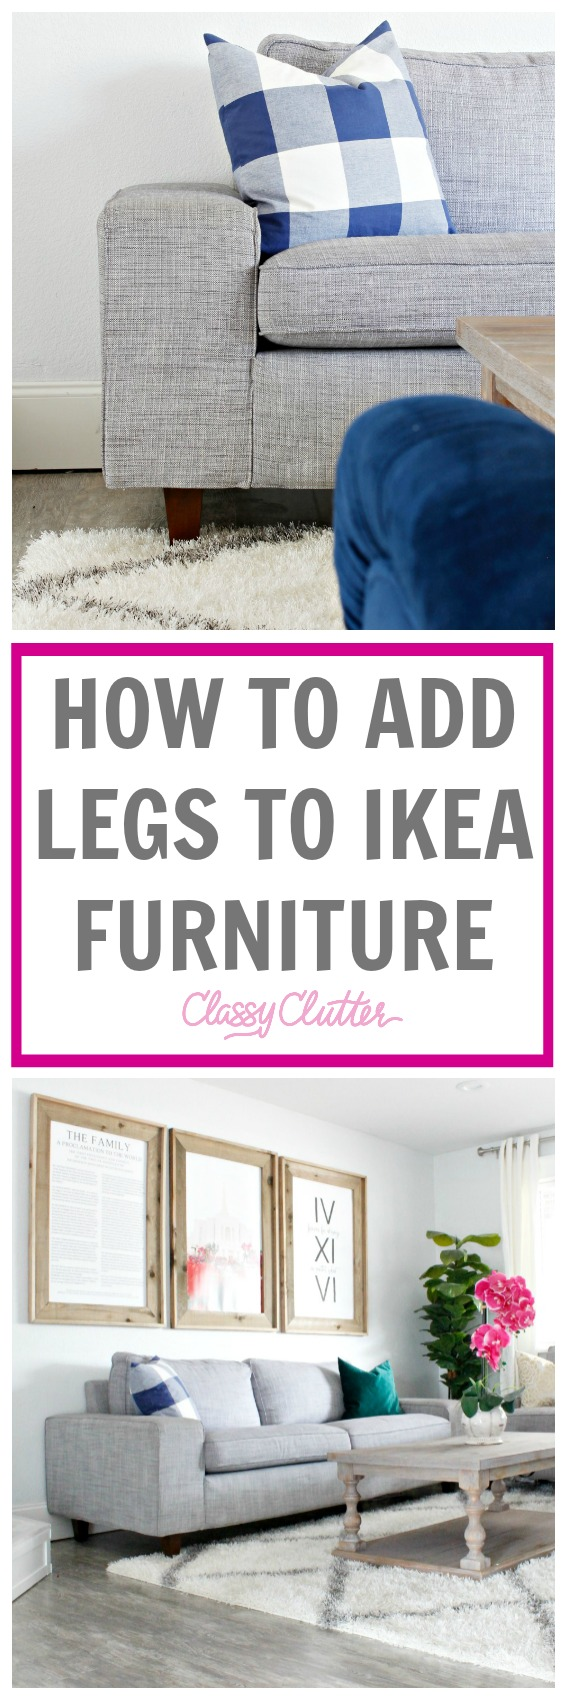 How to add legs to ikea couches - www.classyclutter.net